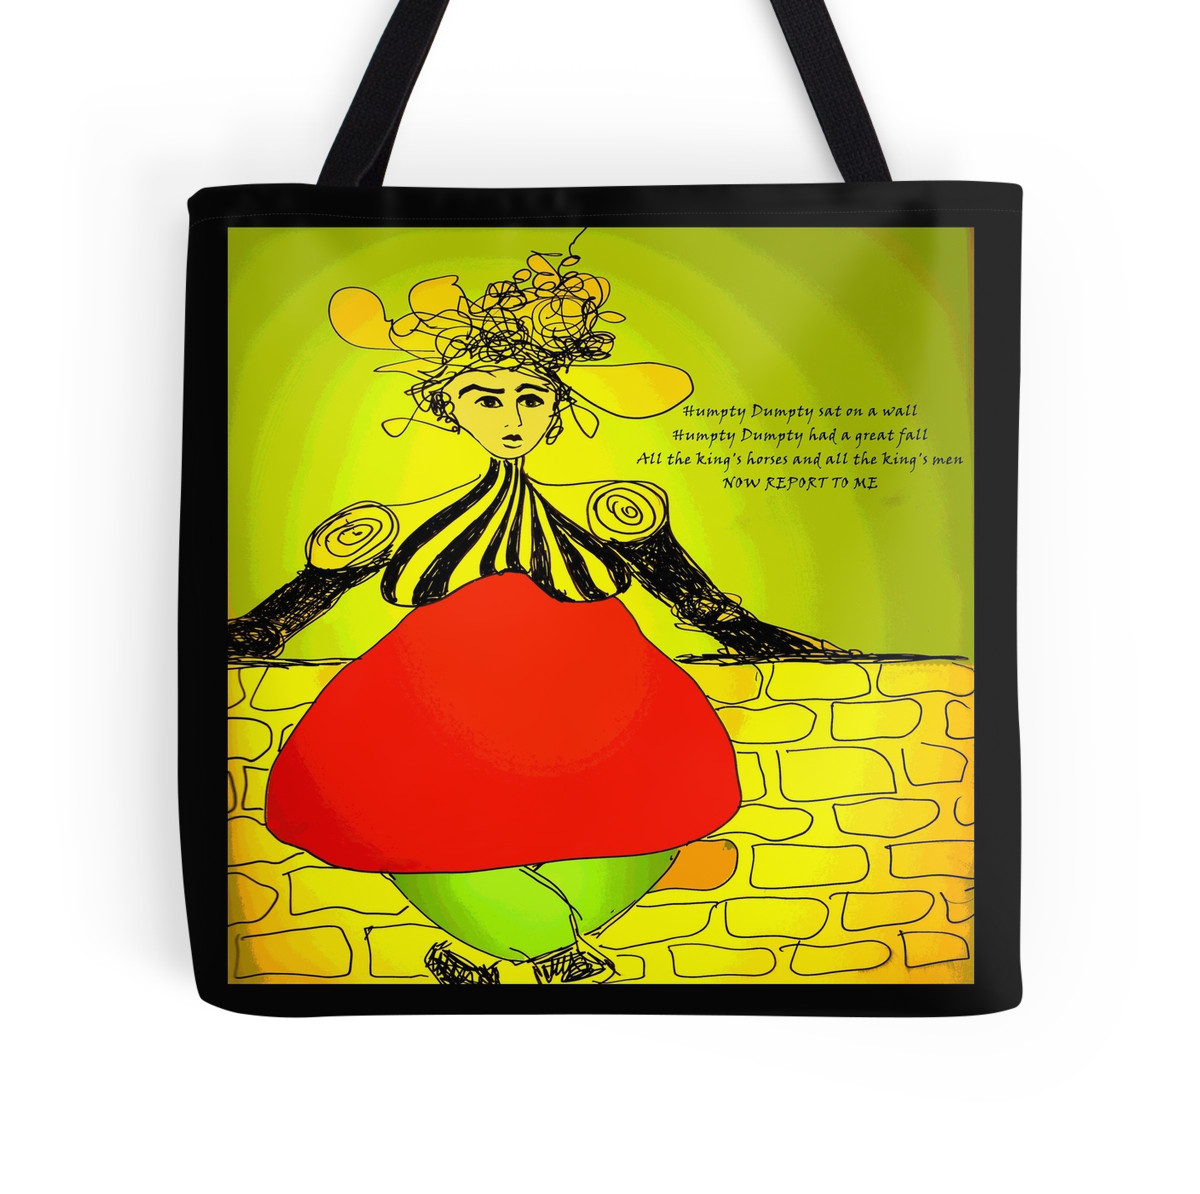 Humpty Dumpty Tote Bag by Sarah Curtiss